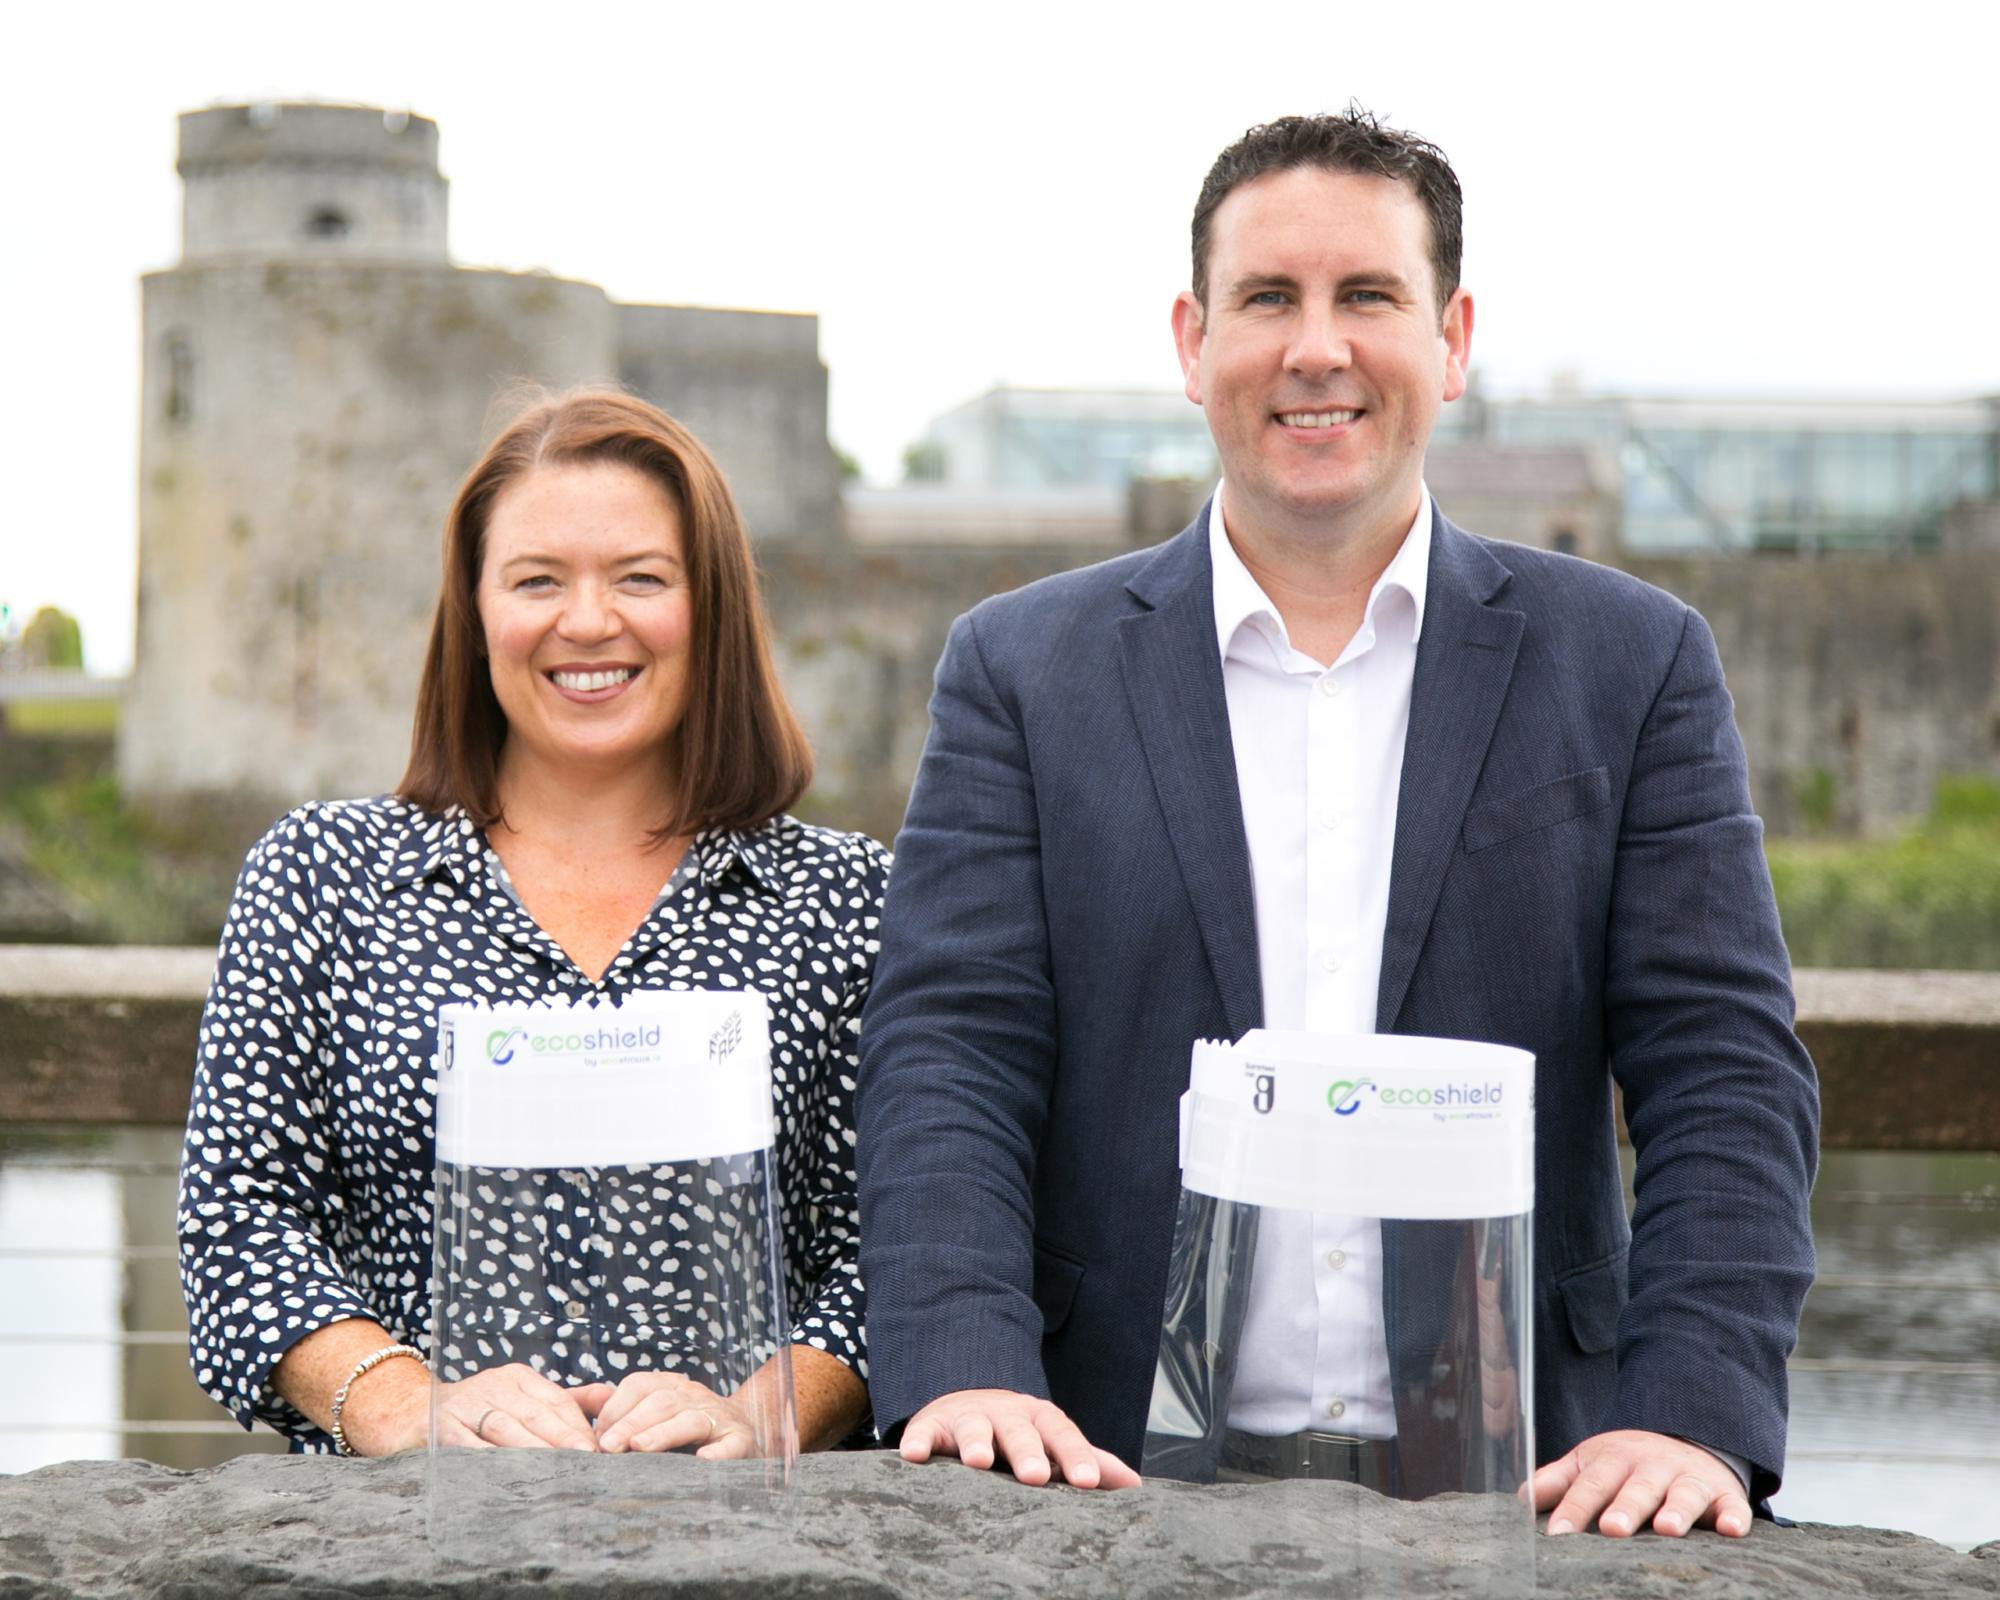 EcoStraws.ie launches the world's first plastic-free PPE in Ireland View Larger Image